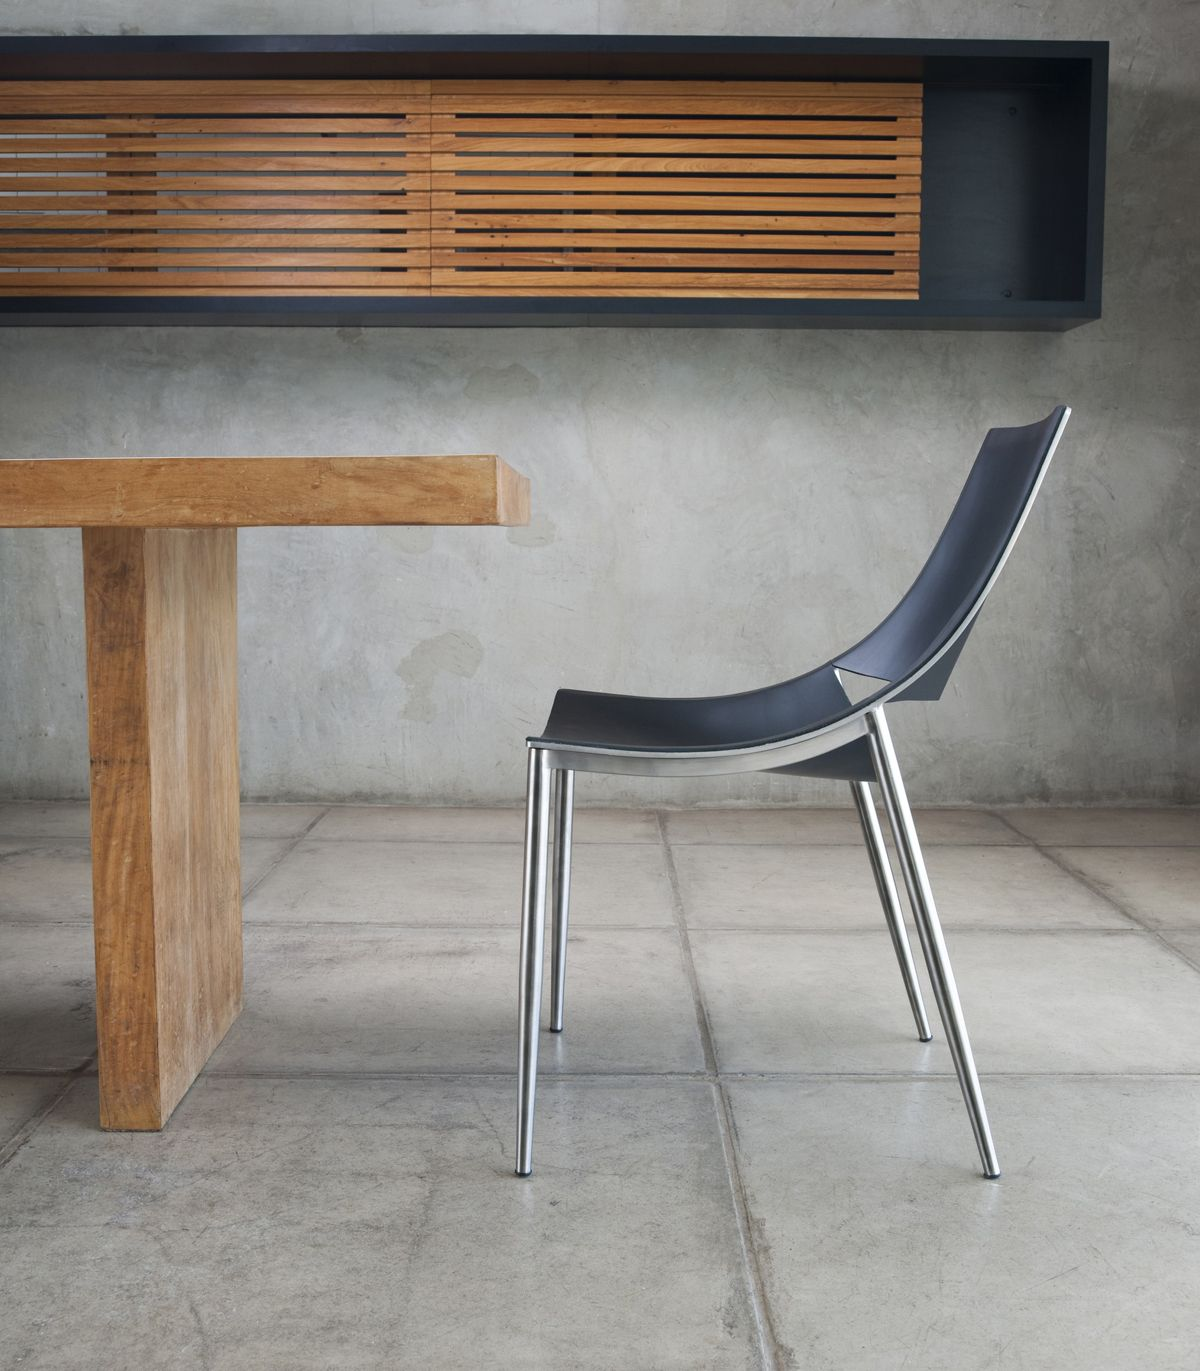 Sloane Dining Chair Sloane Dining Chair